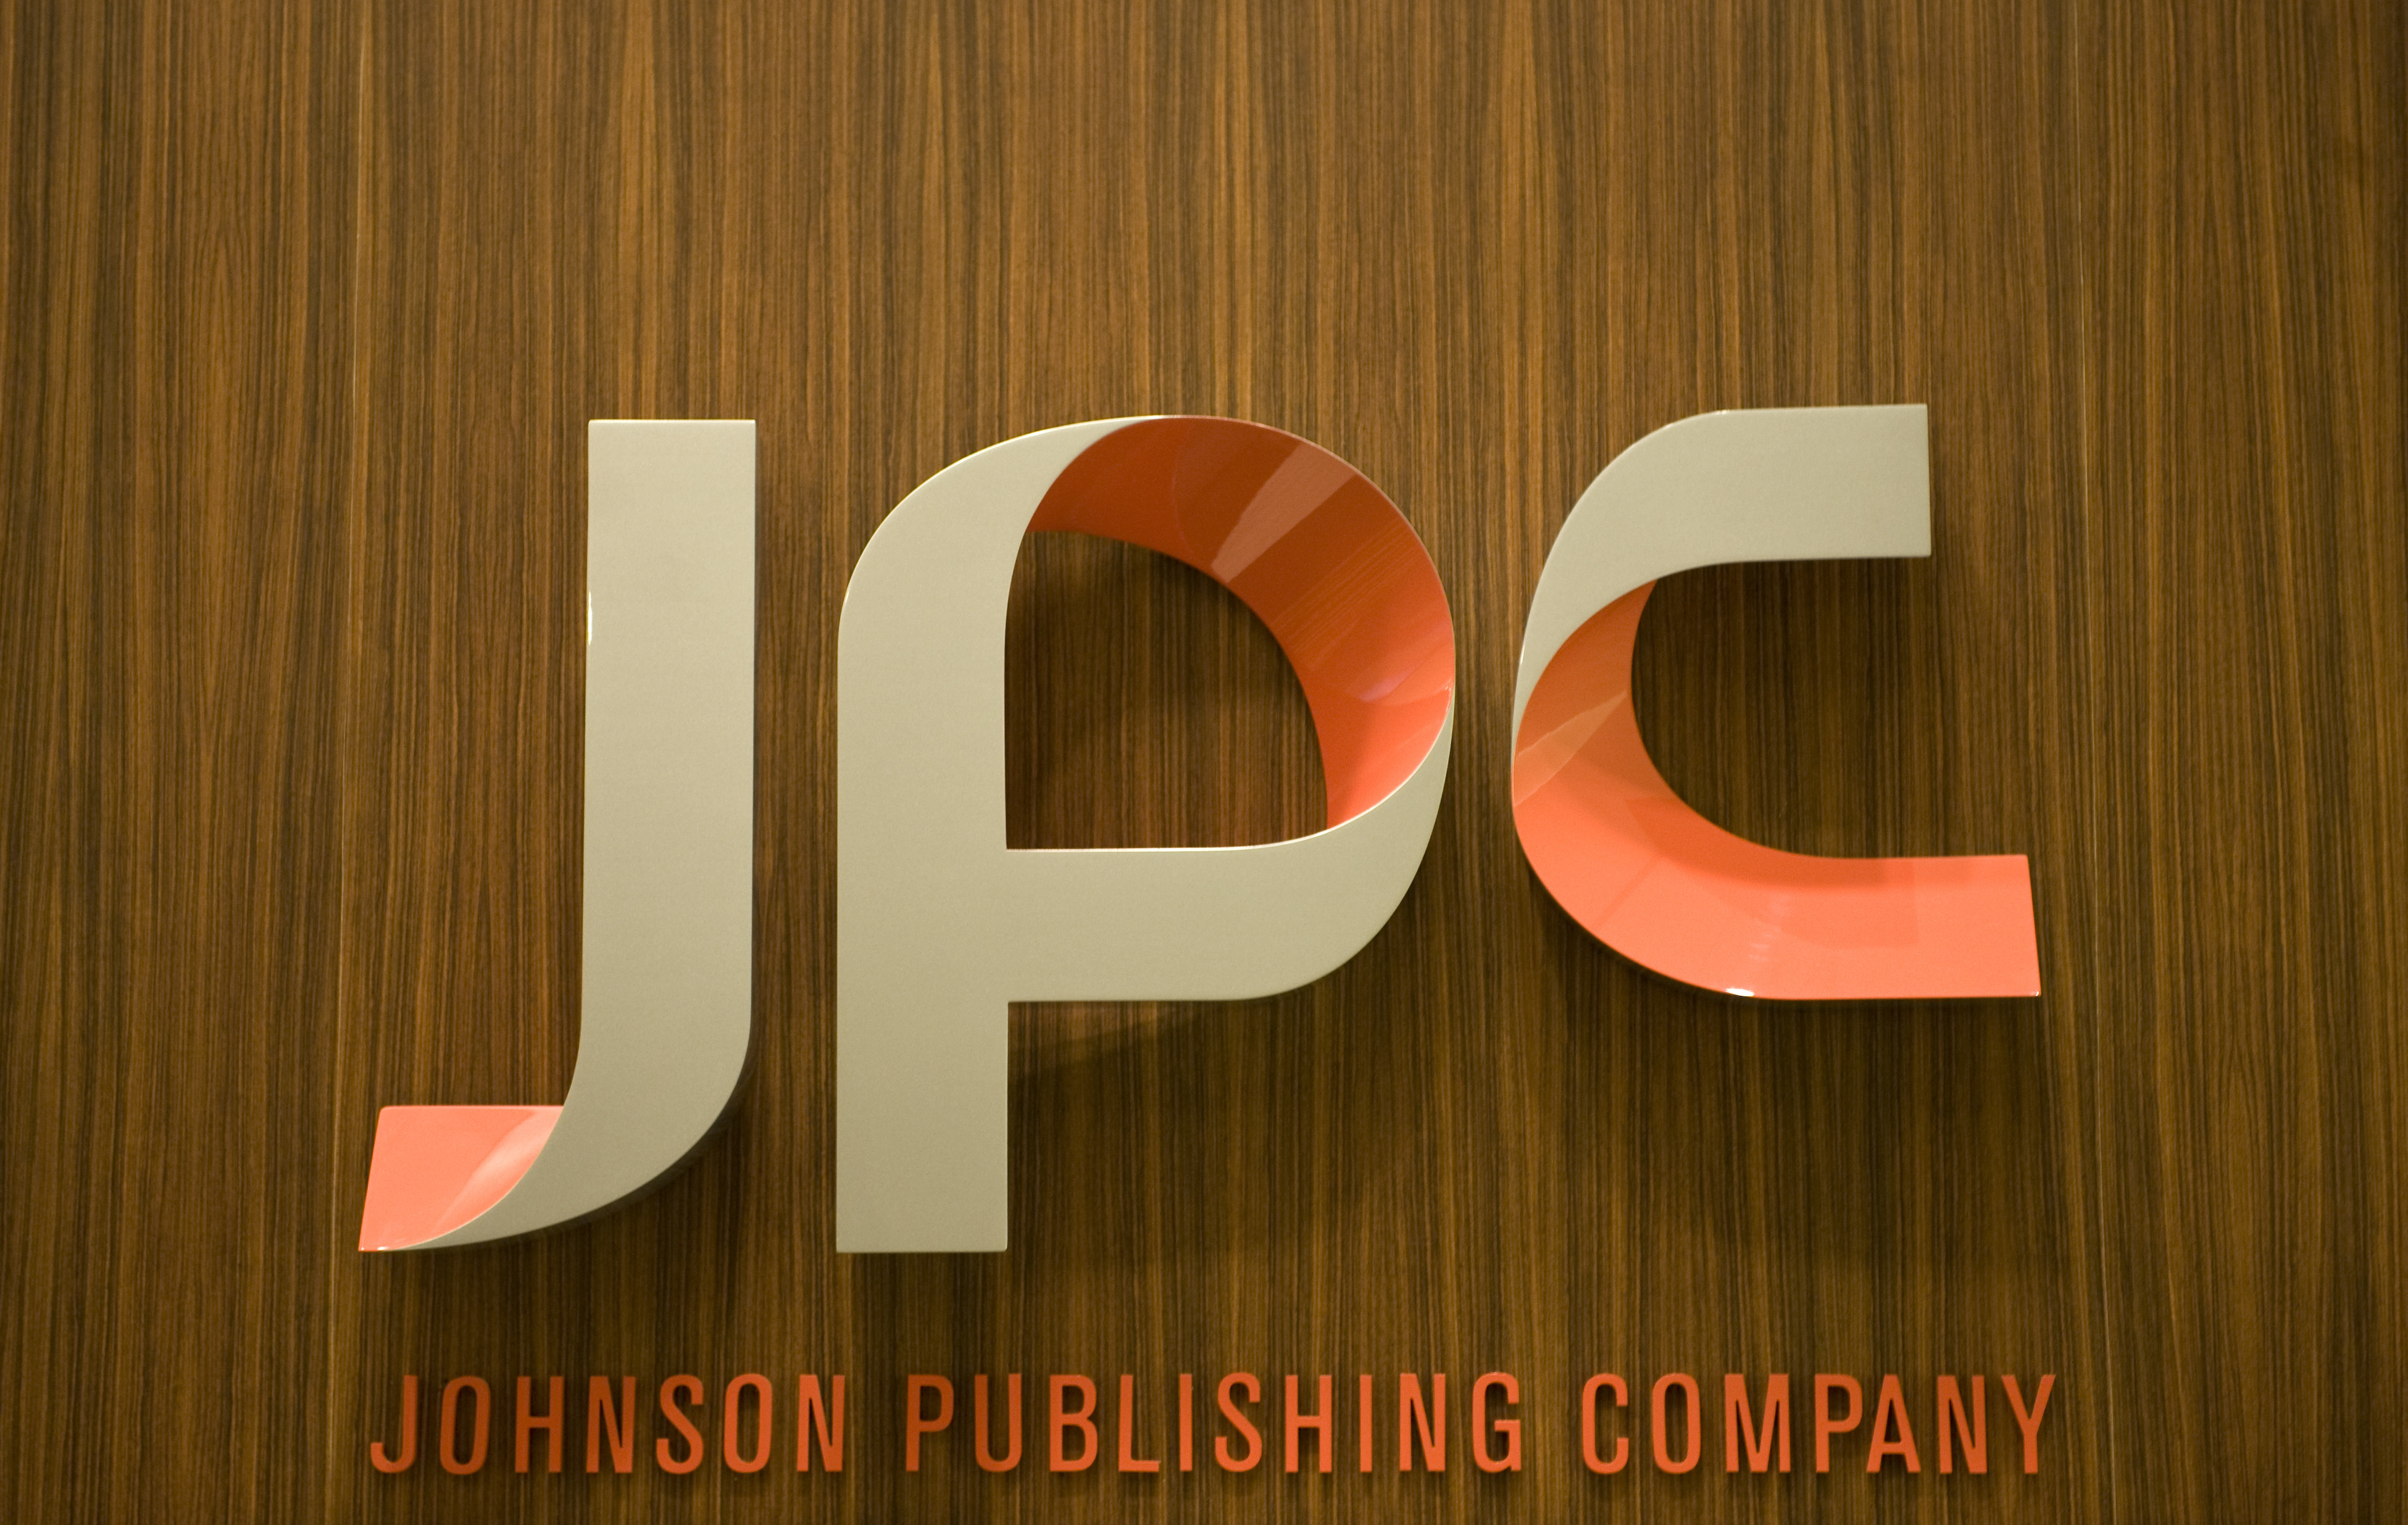 Johnson Publishing Company logo